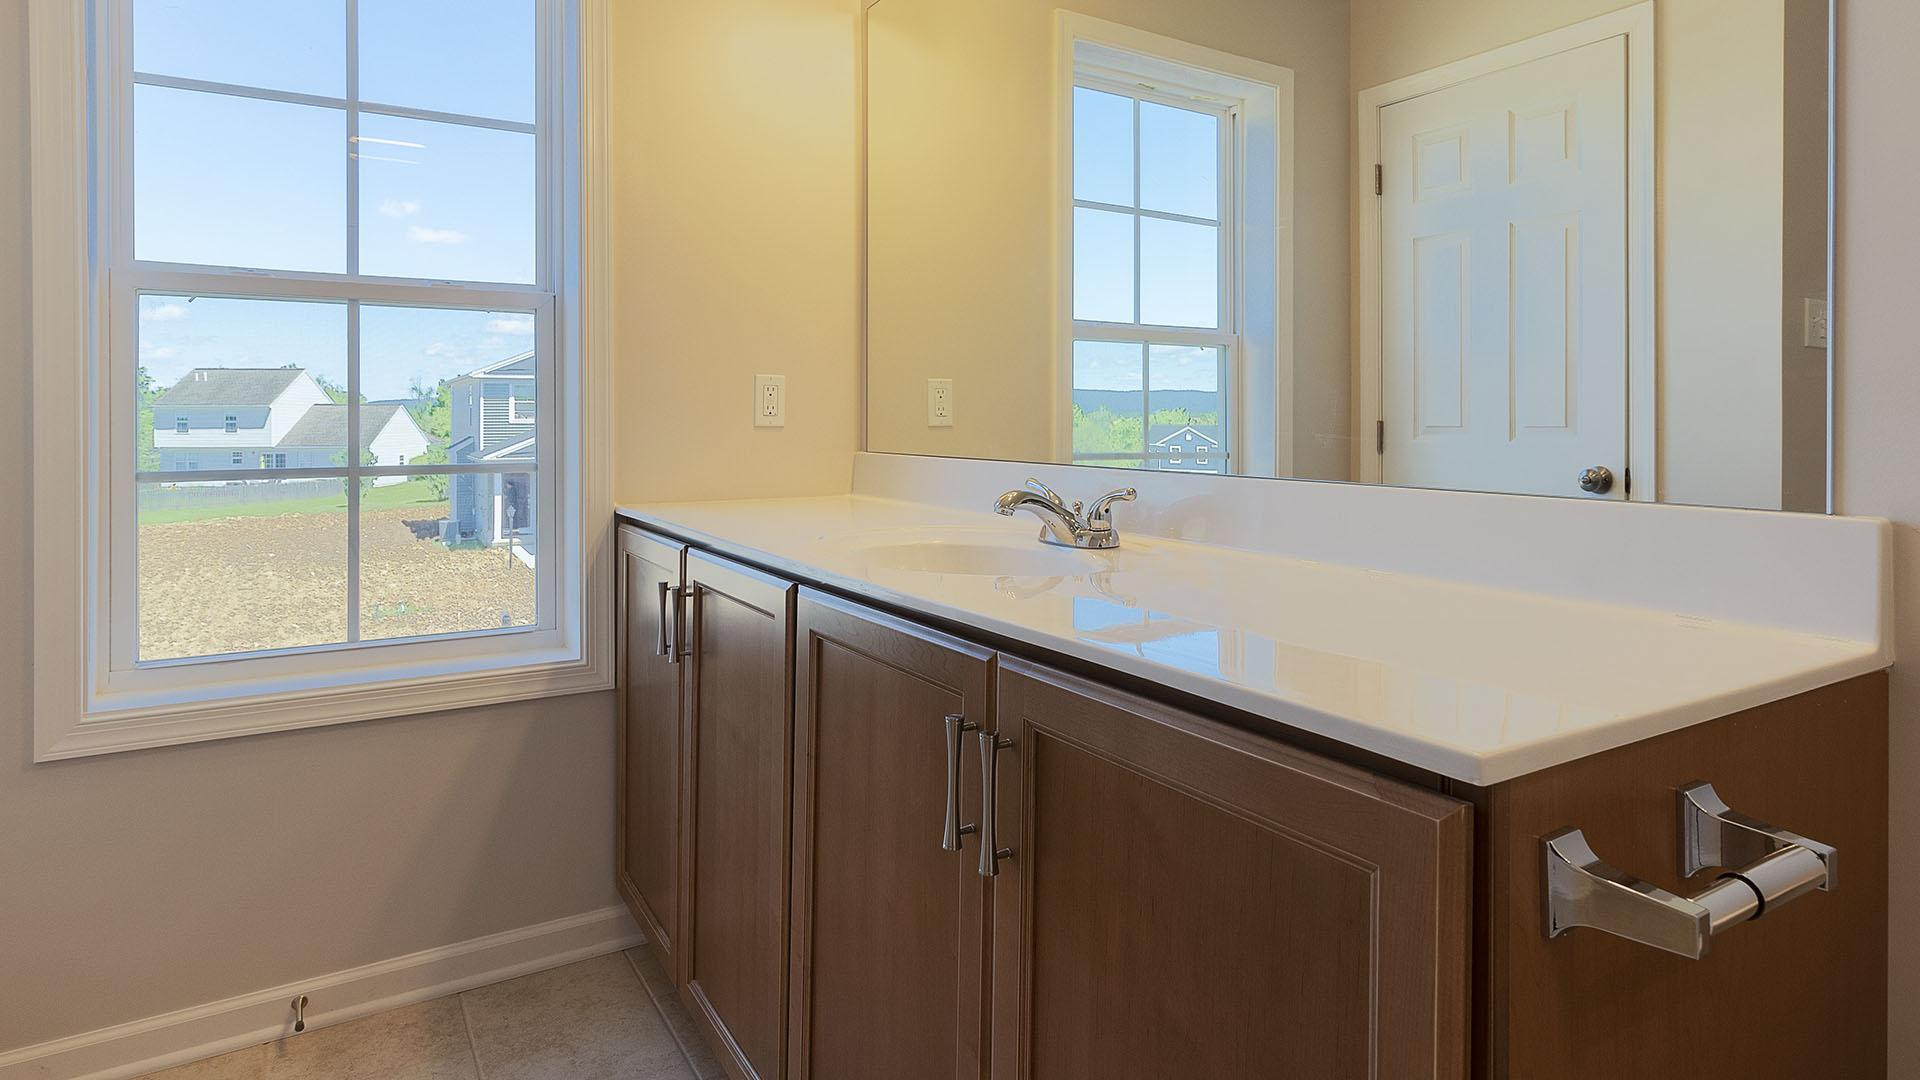 Bathroom featured in the Pinewood By S & A Homes in Altoona, PA